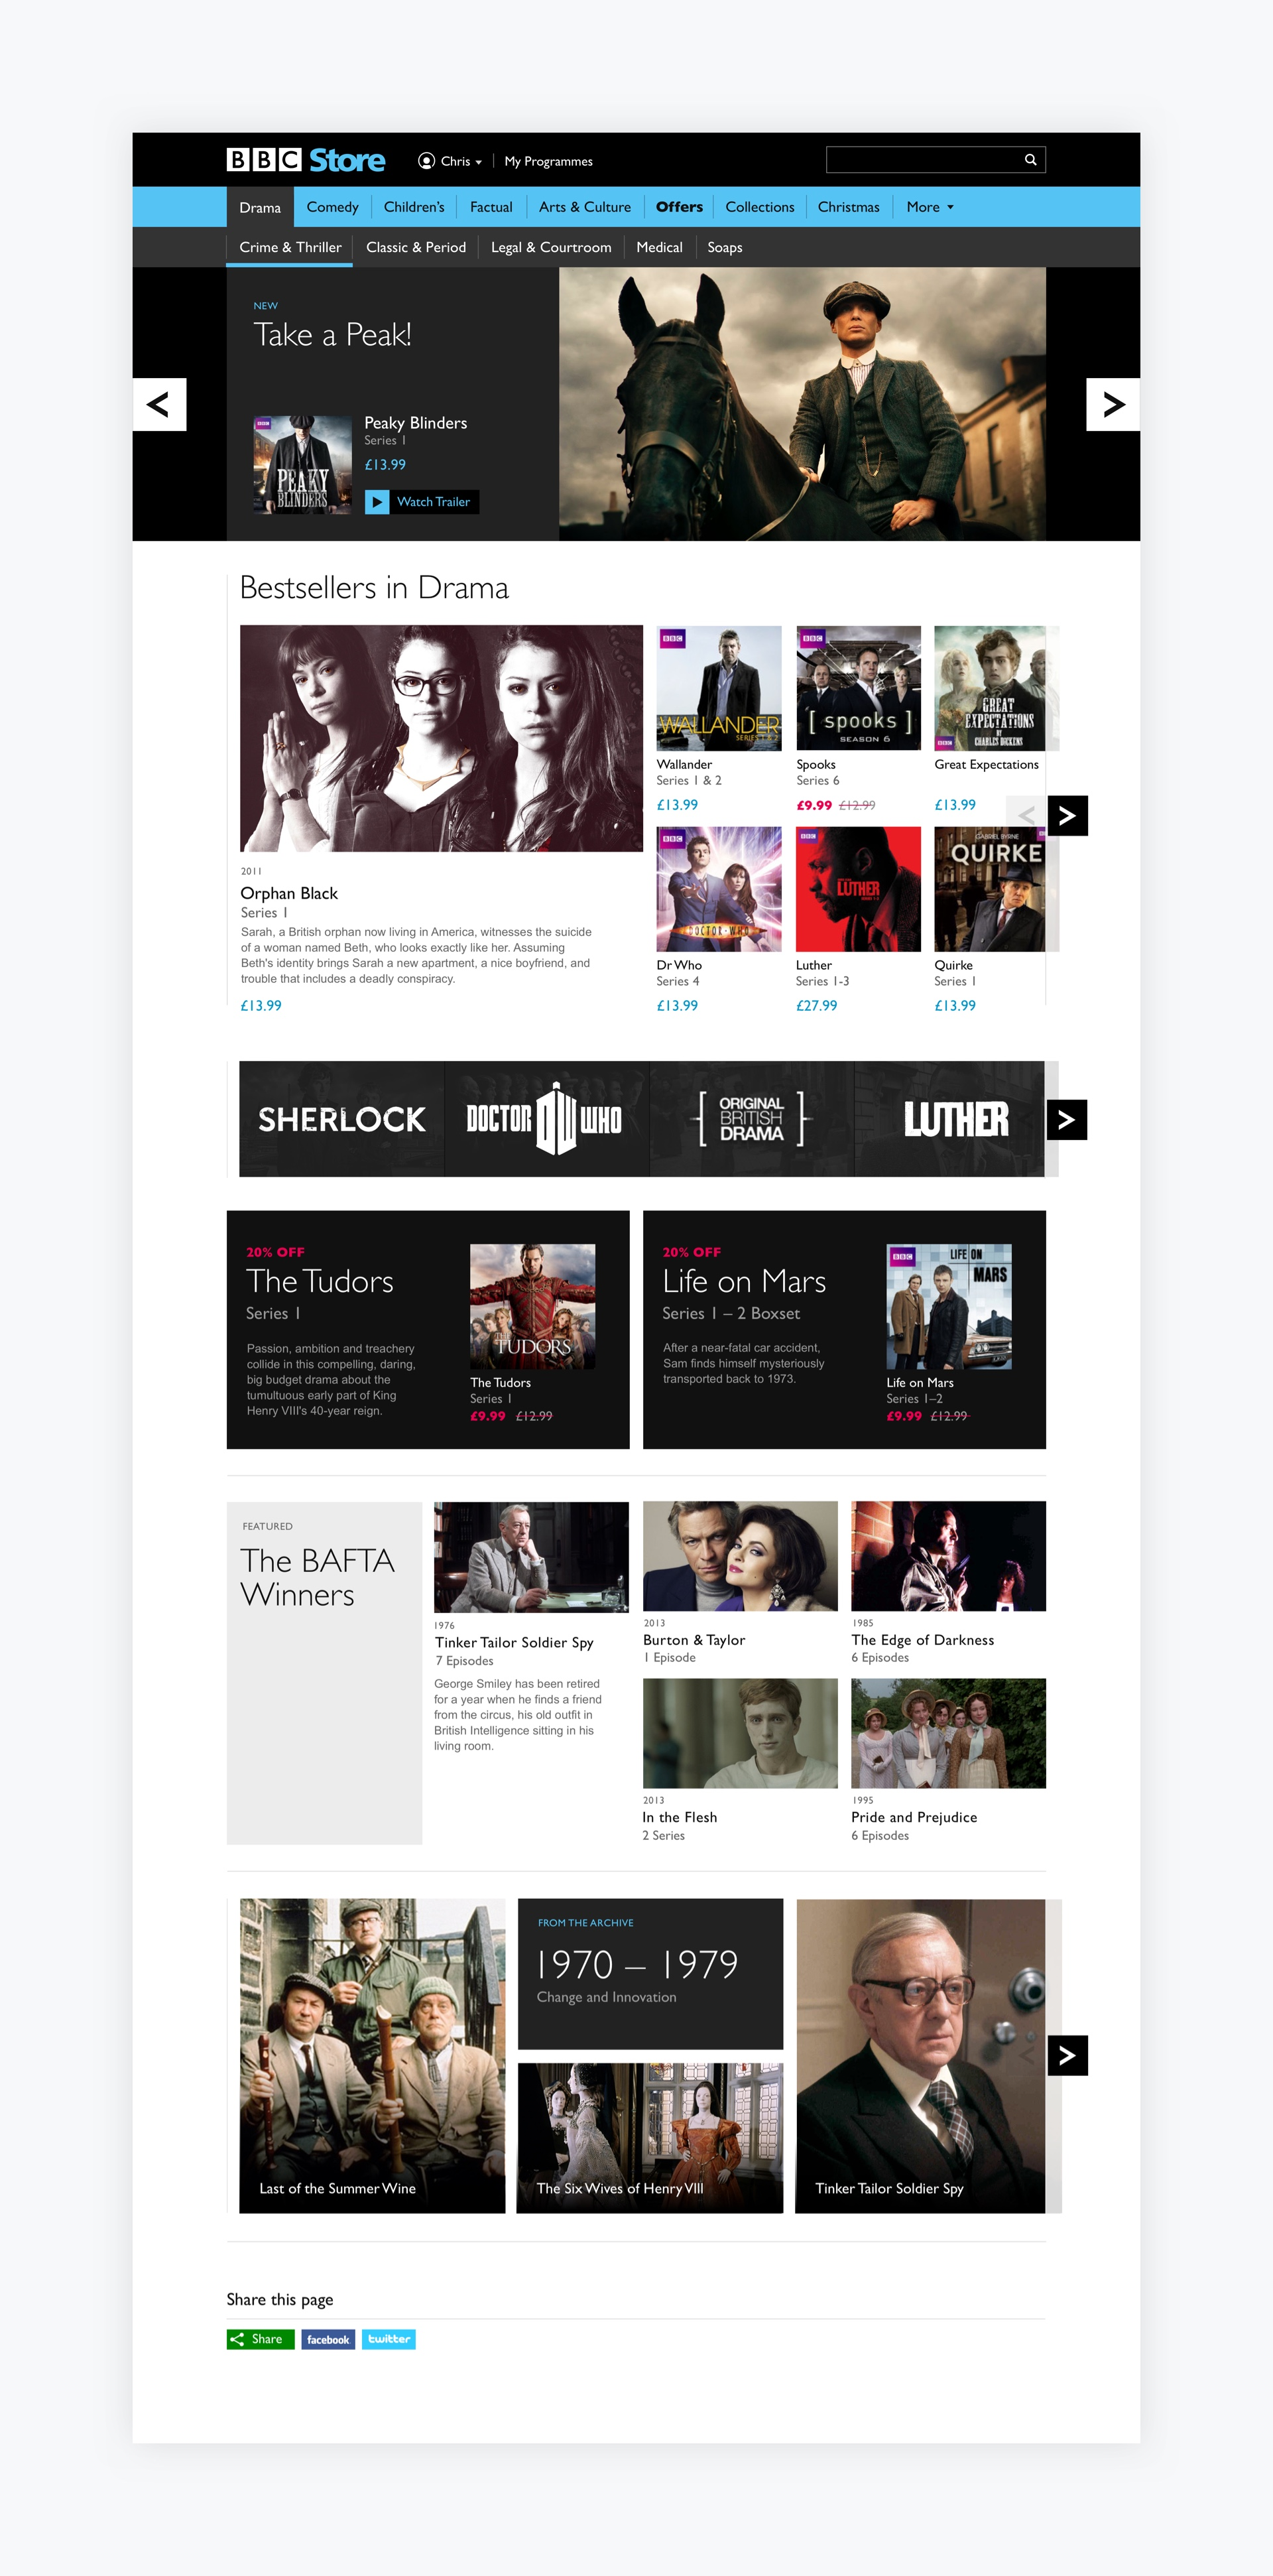 BBC Store - Our approach